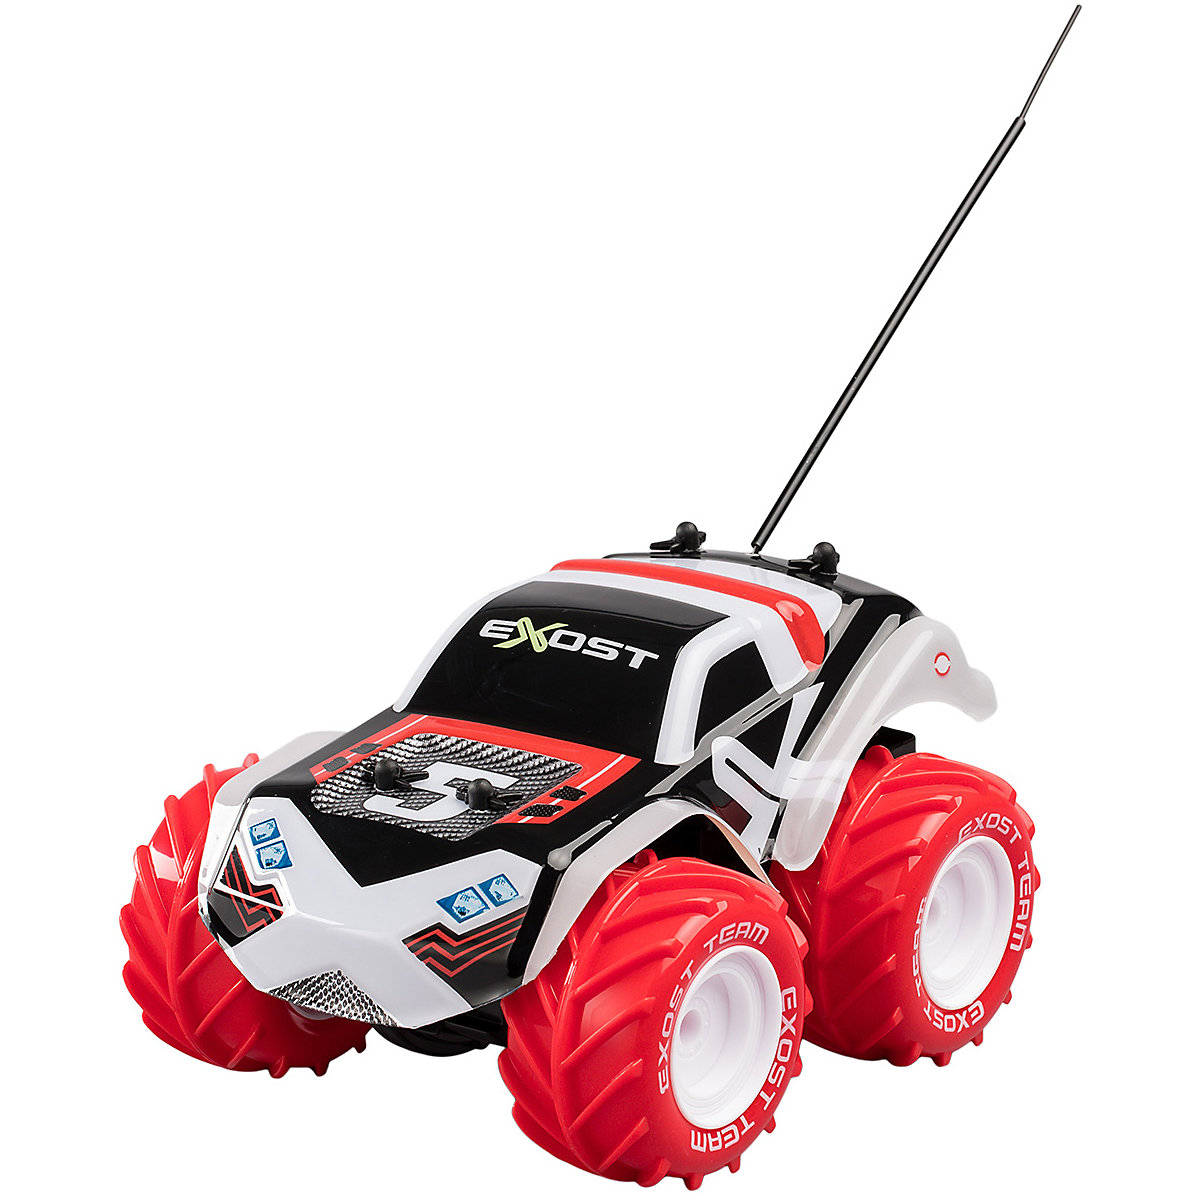 Silverlit RC Cars 10077781 Remote Control Toys radio-controlled toy games children Kids car high speed remote control rc rock crawler car toy 10428 b rc climbing car brushed electric car toy with led light best gift toy